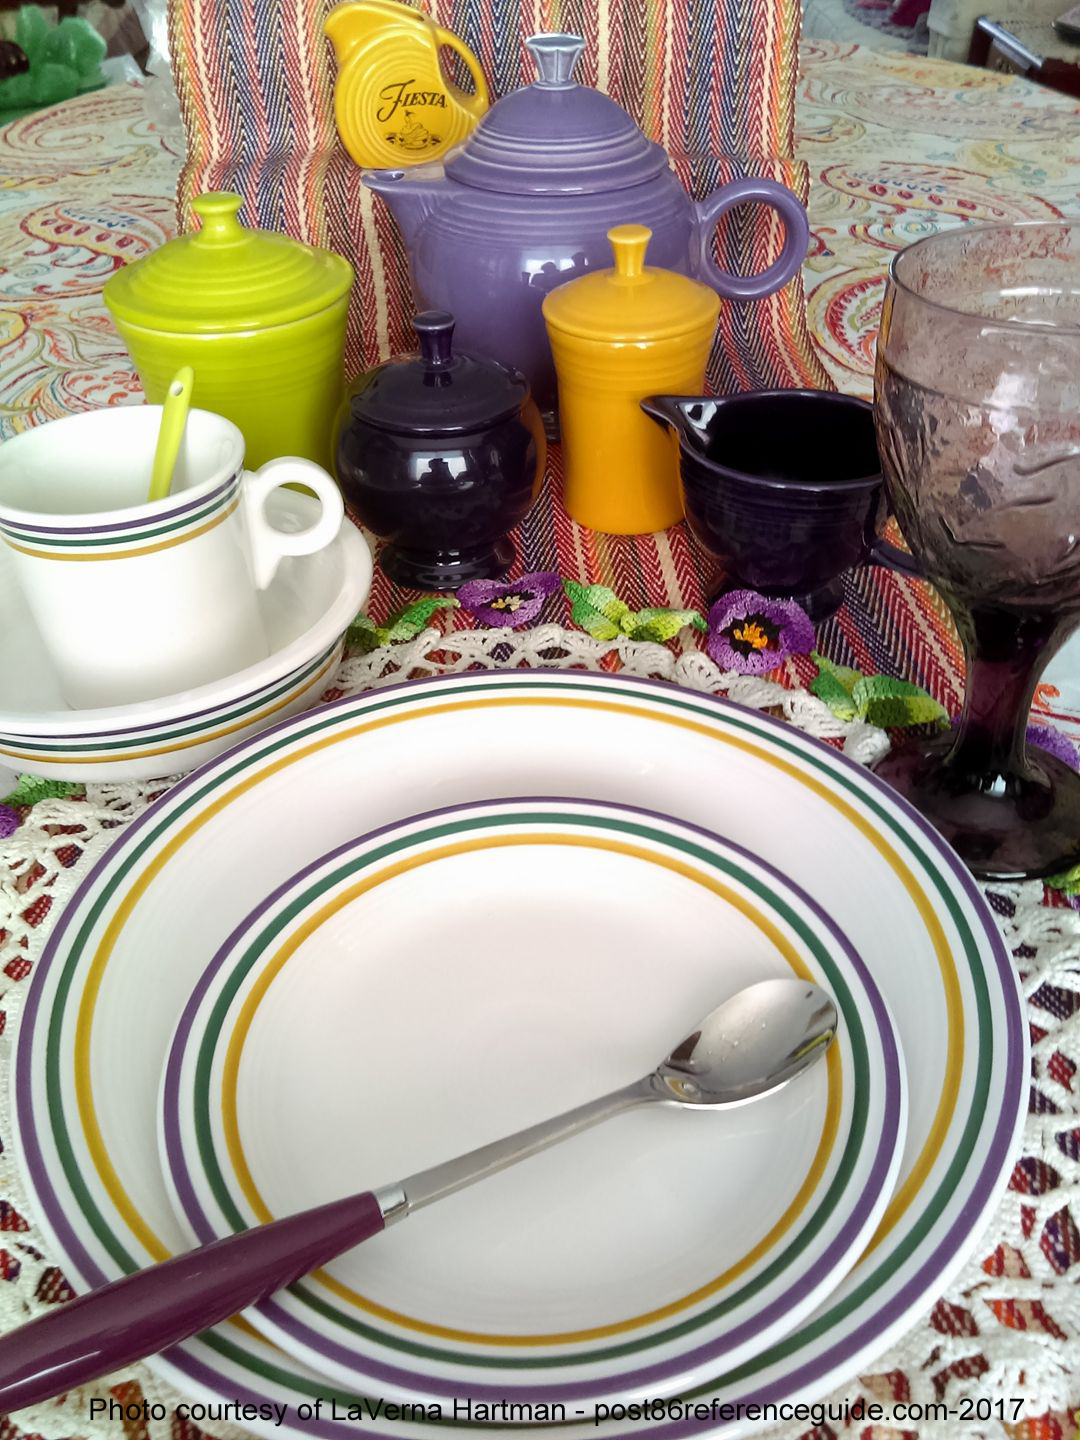 Fiesta® Mardi Gras & Fiesta® Mardi Gras by Homer Laughlin China